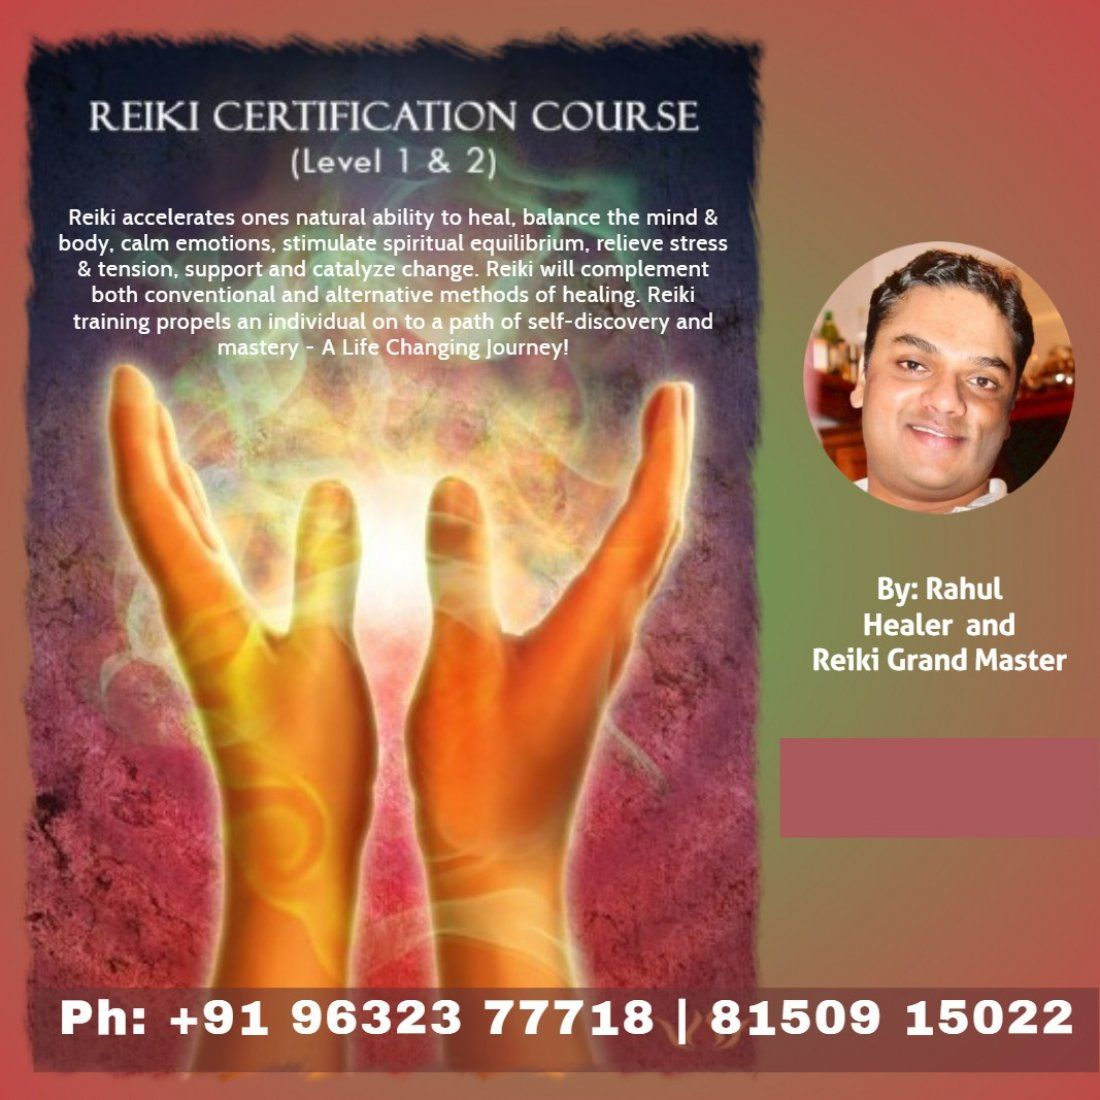 Reiki level 1&2 workshop